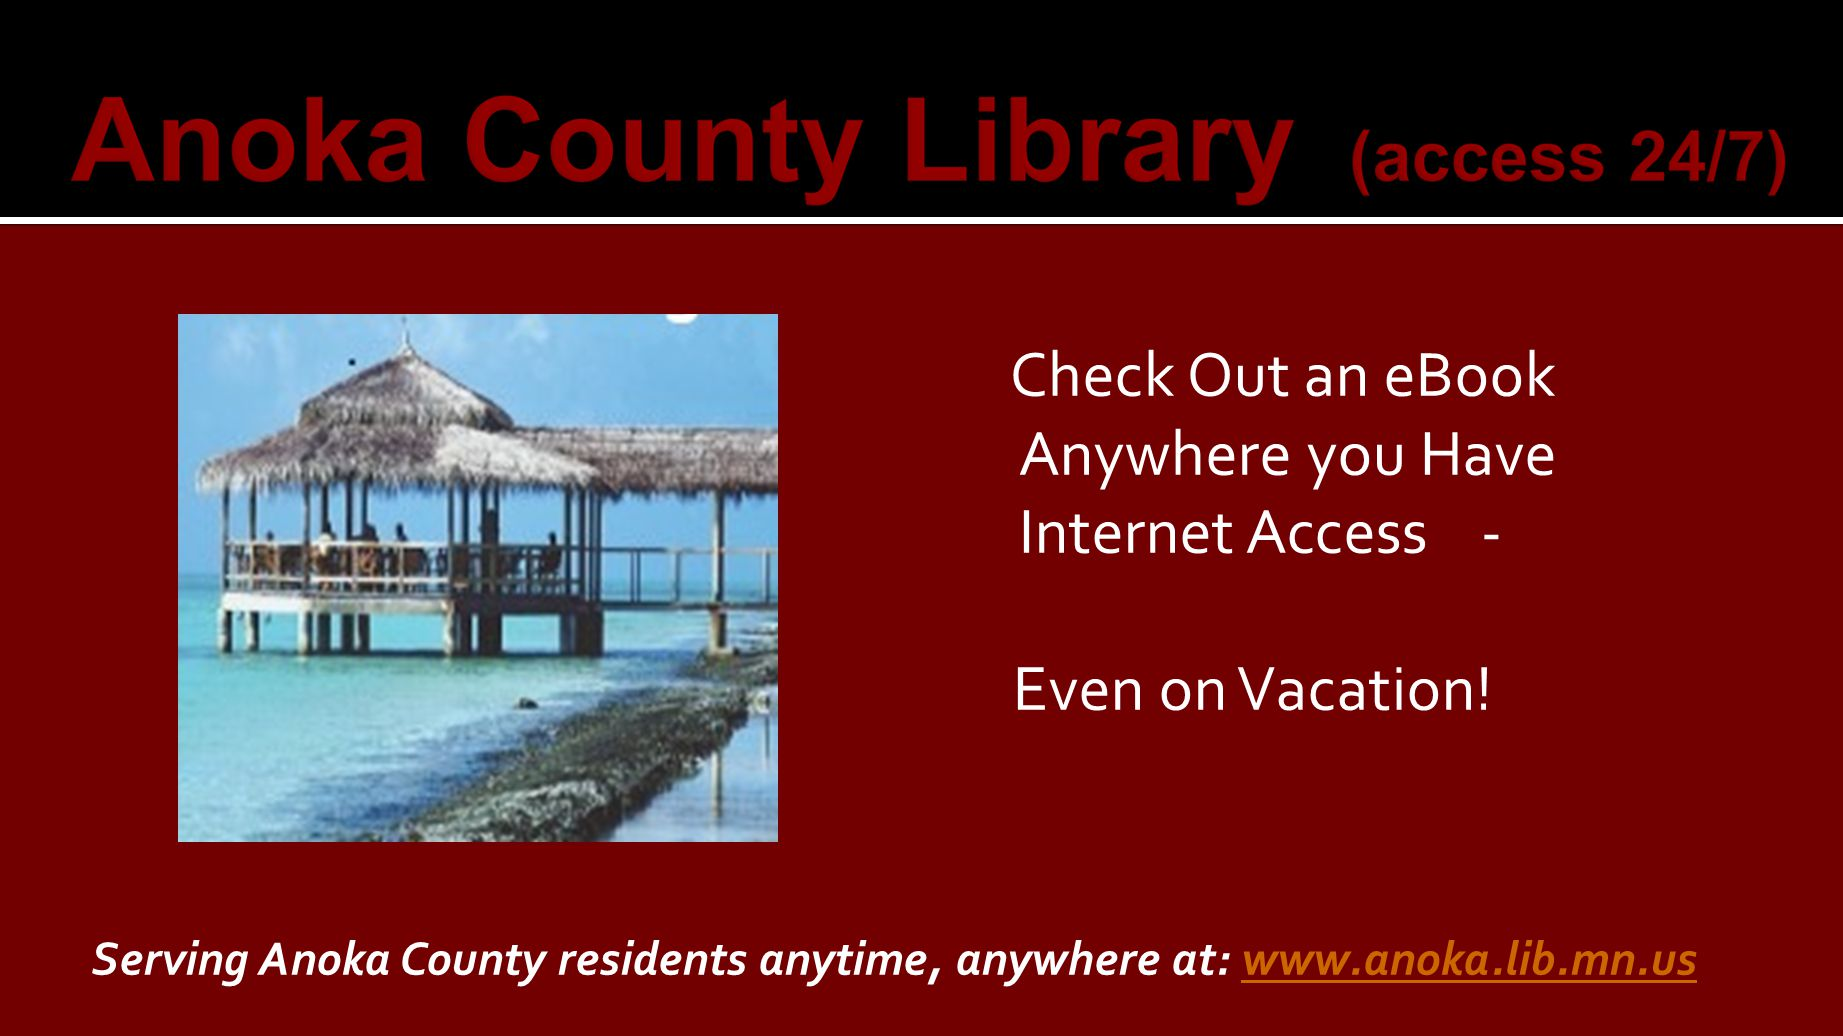 Check Out an eBook Anywhere you Have Internet Access - Even on Vacation.